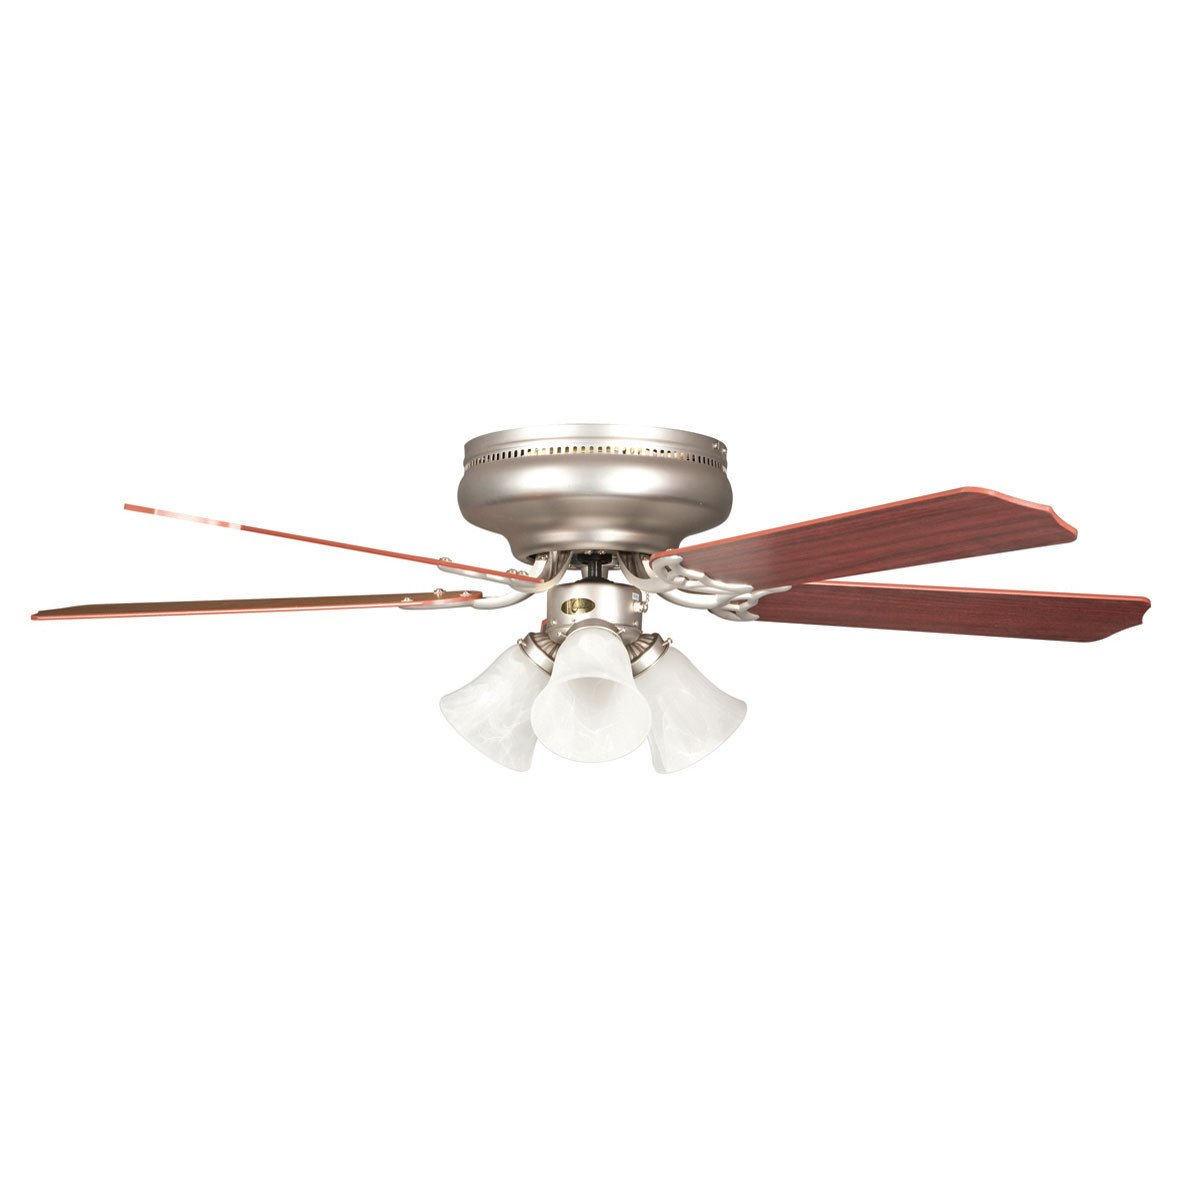 "Concord Fans 52"" Rosemount Hugger Satin Nickel Ceiling Fan with 3 Lights Kit"